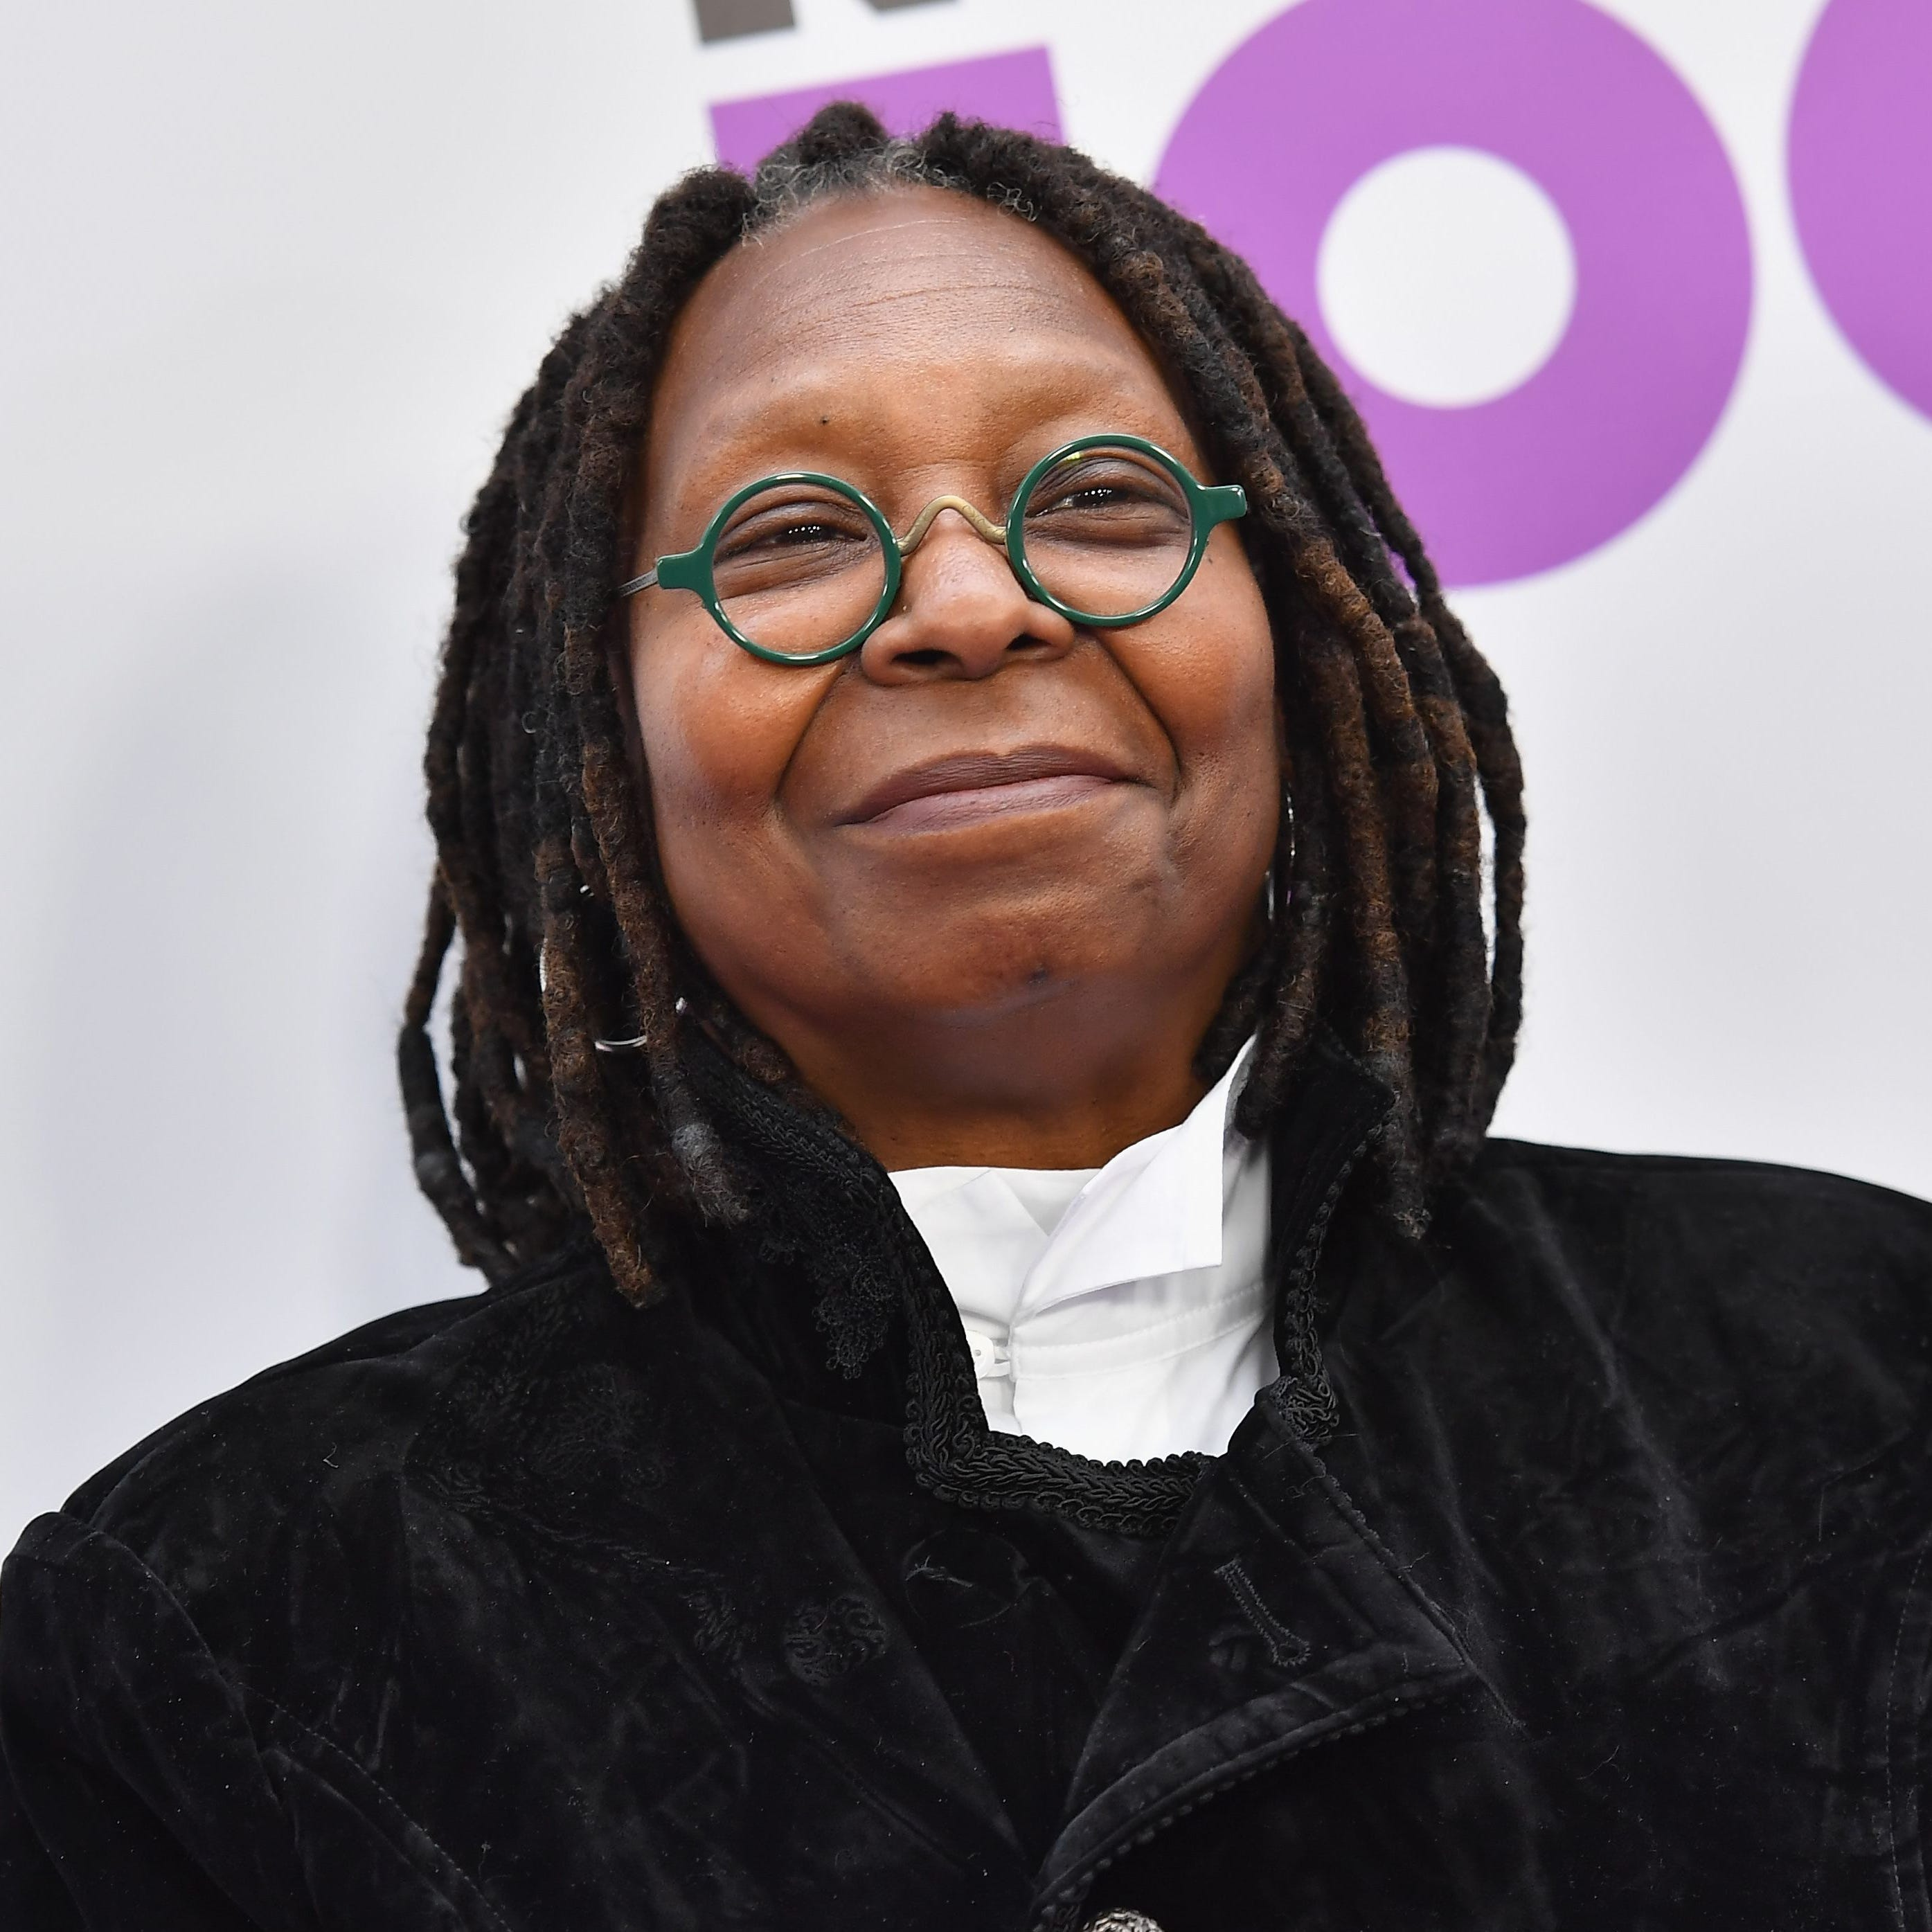 Whoopi Goldberg on weed: Let adults be adults and legalize cannabis